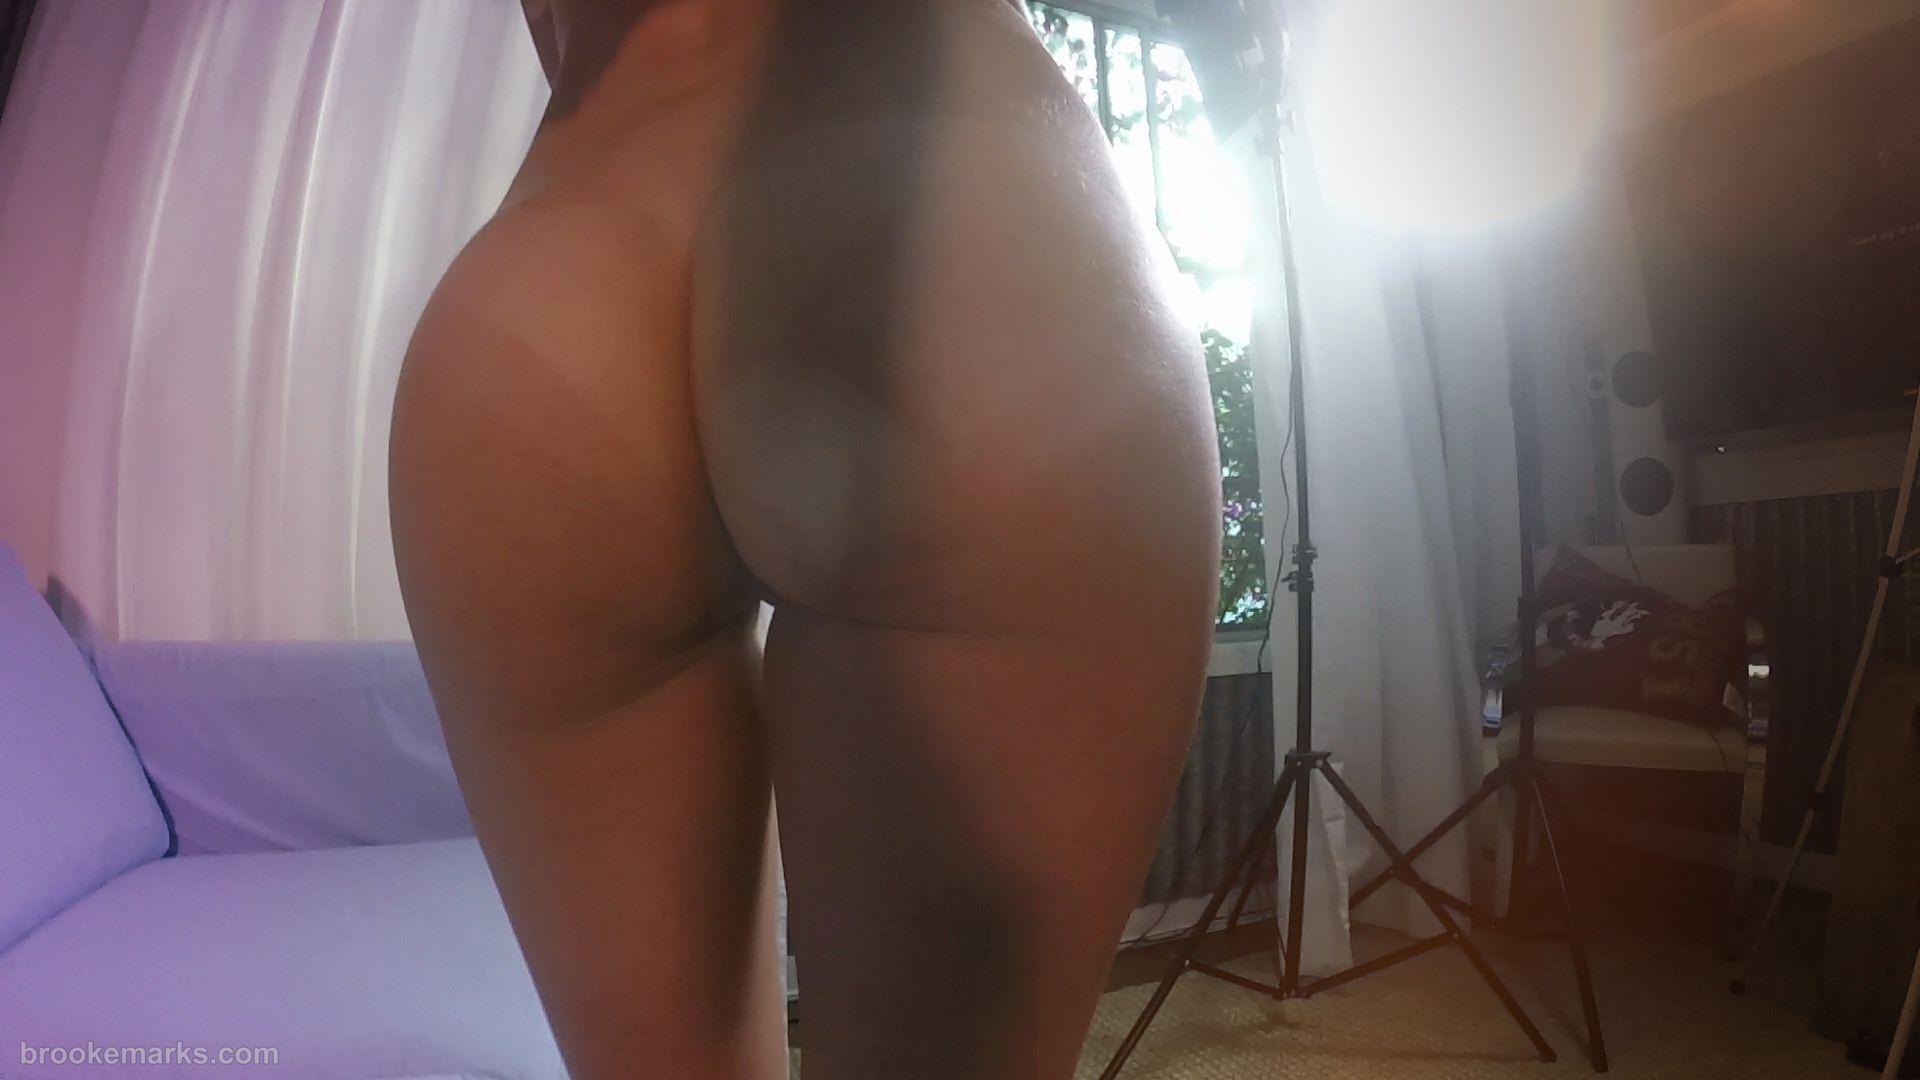 Sexy blonde gives a beautiful close up of her juicy firm ass